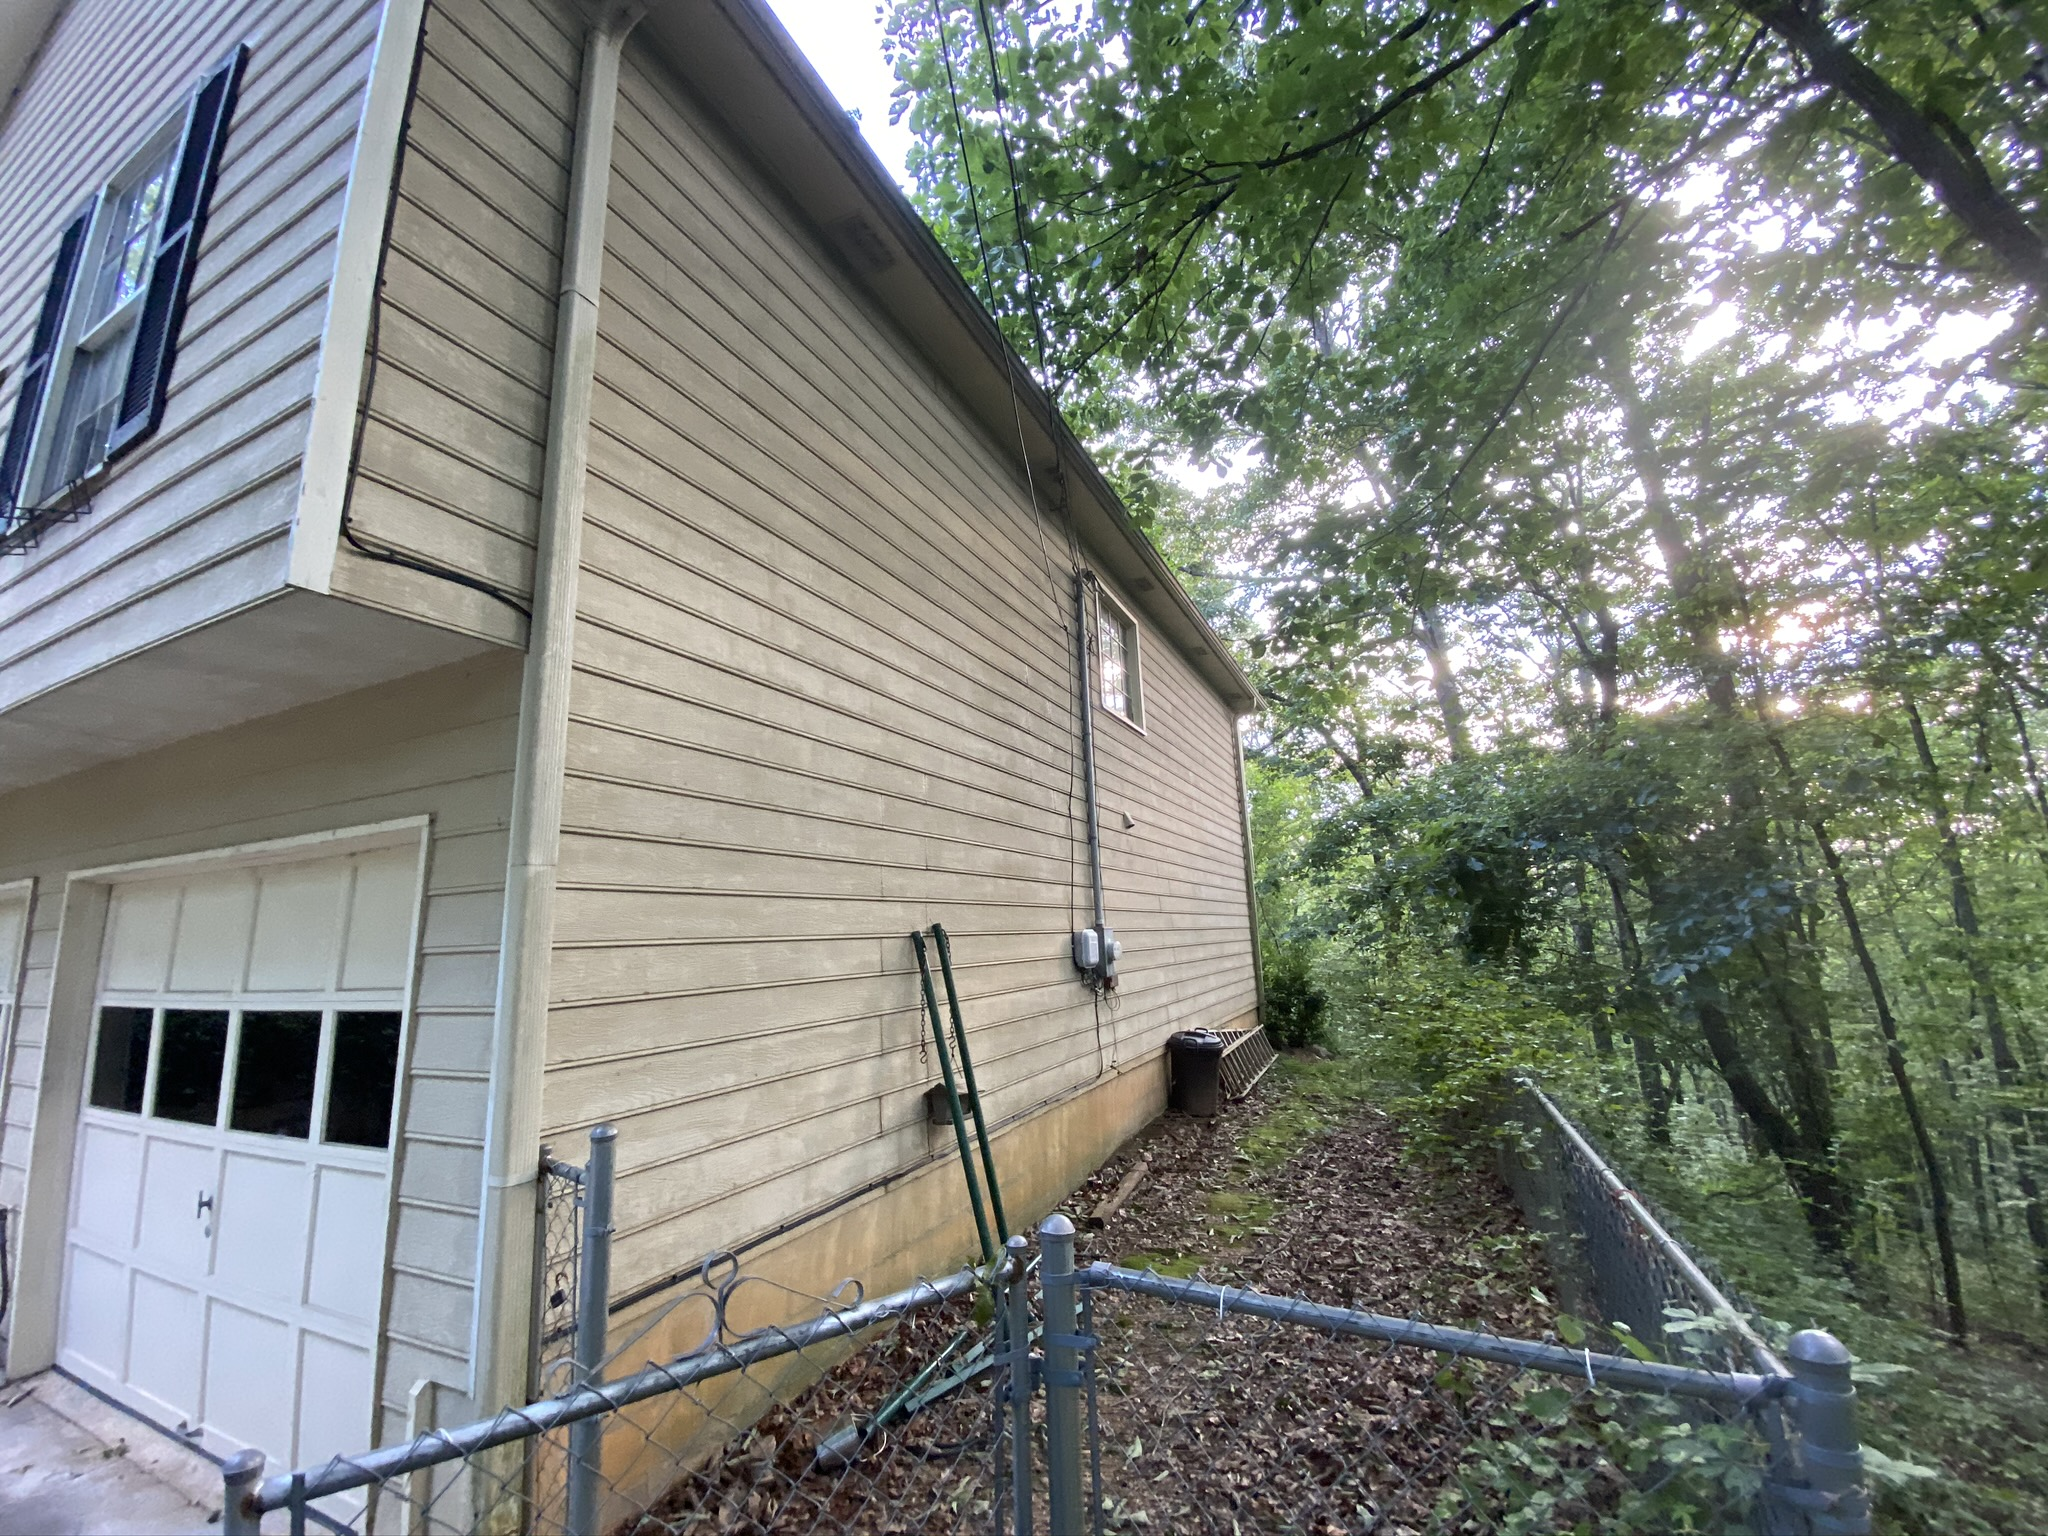 Deteriorating siding in need of replacement